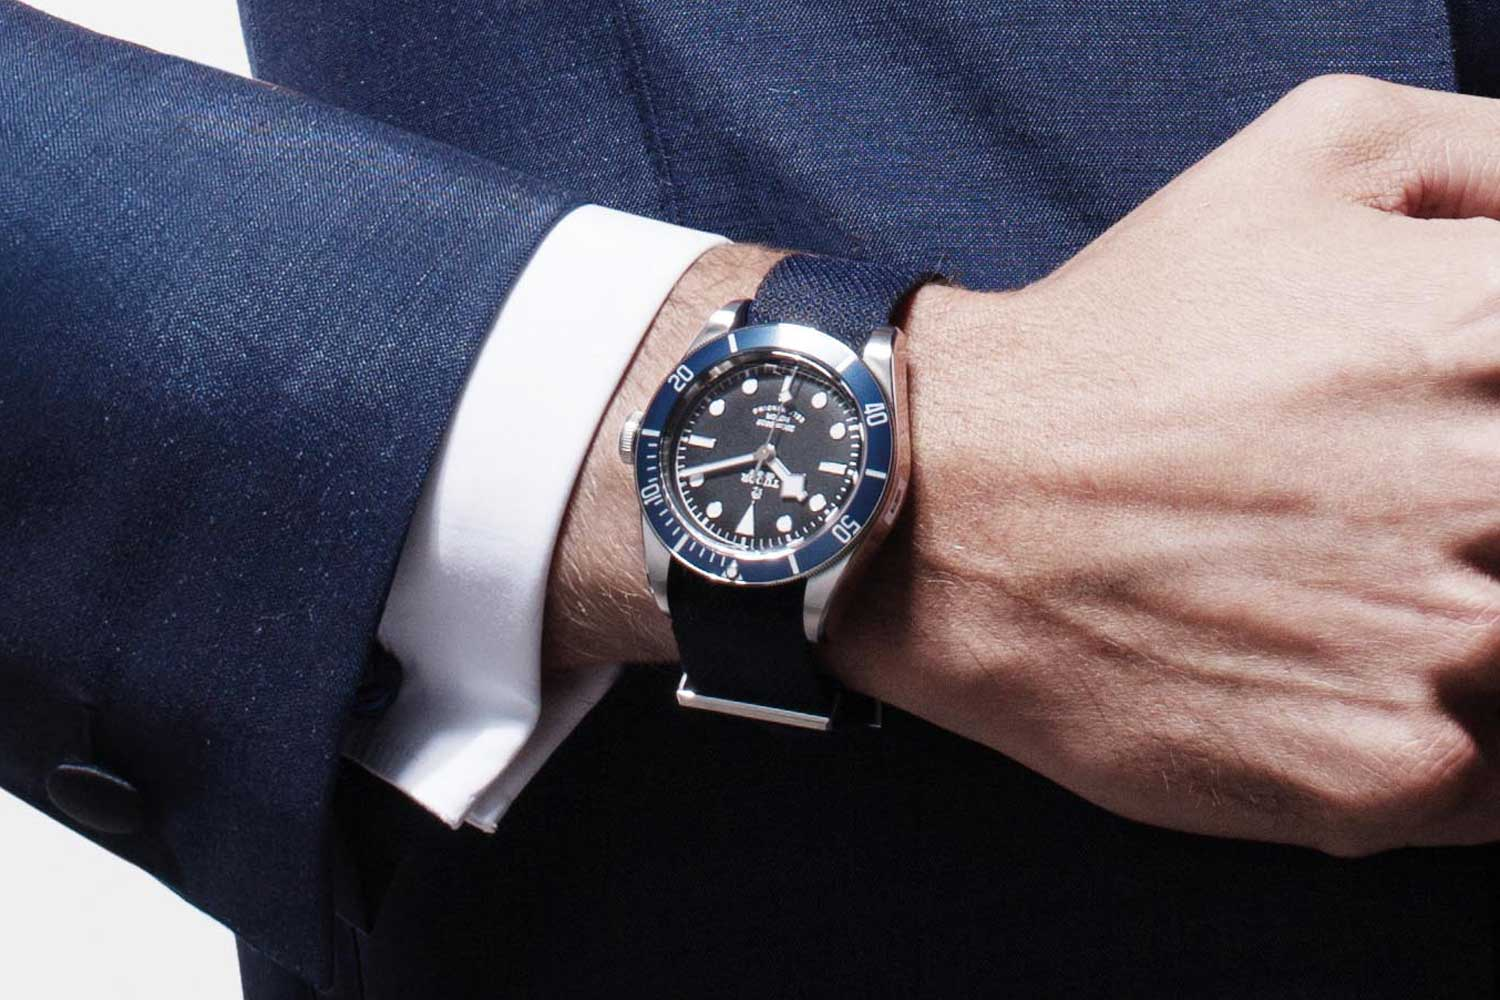 Tudor Heritage Black Bay with navy fabric strap (Image © Revolution)